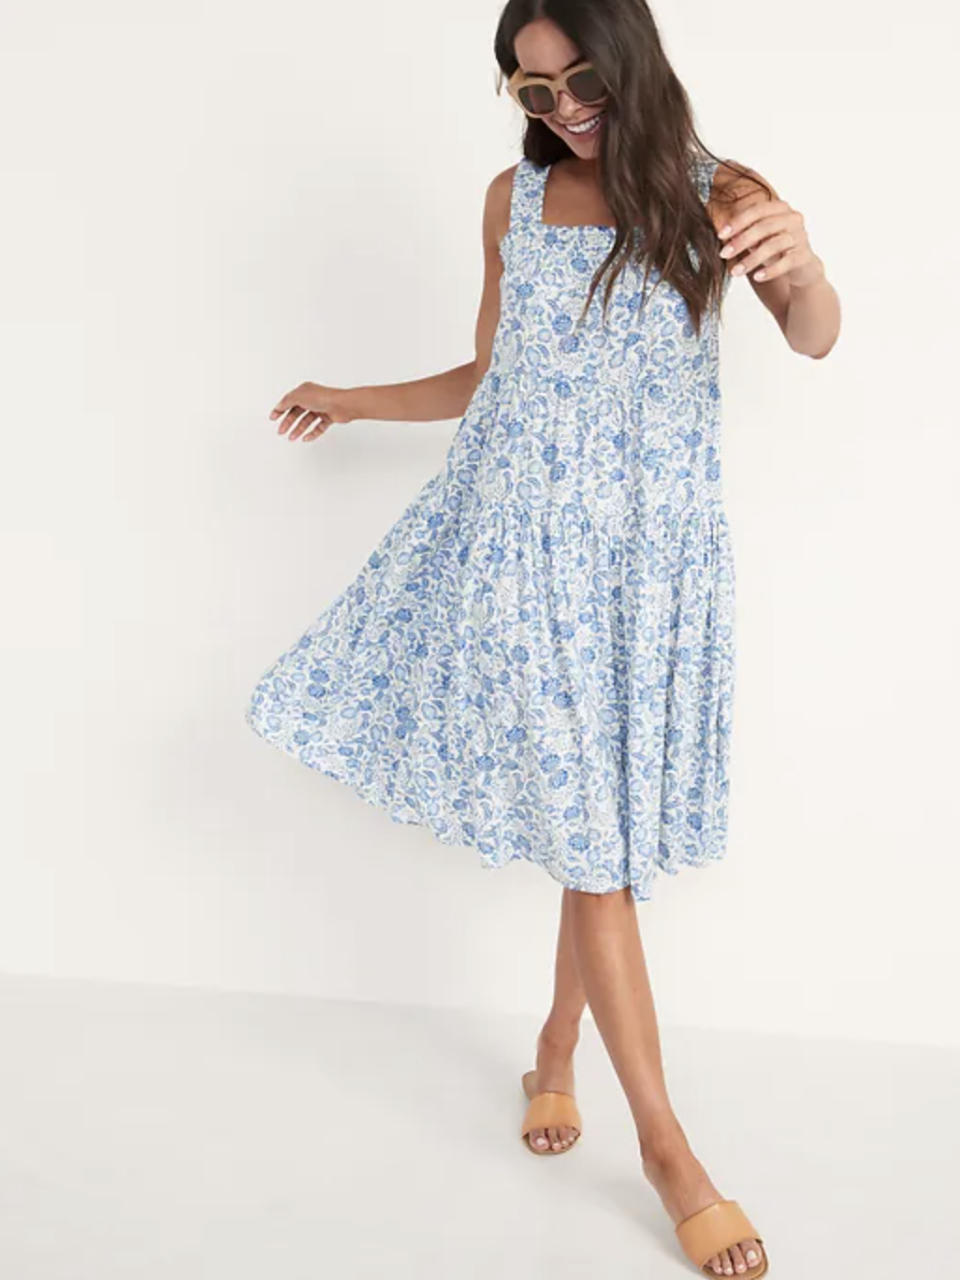 Sleeveless Smocked Floral Midi Swing Dress in Blue Floral (Photo via Old Navy)